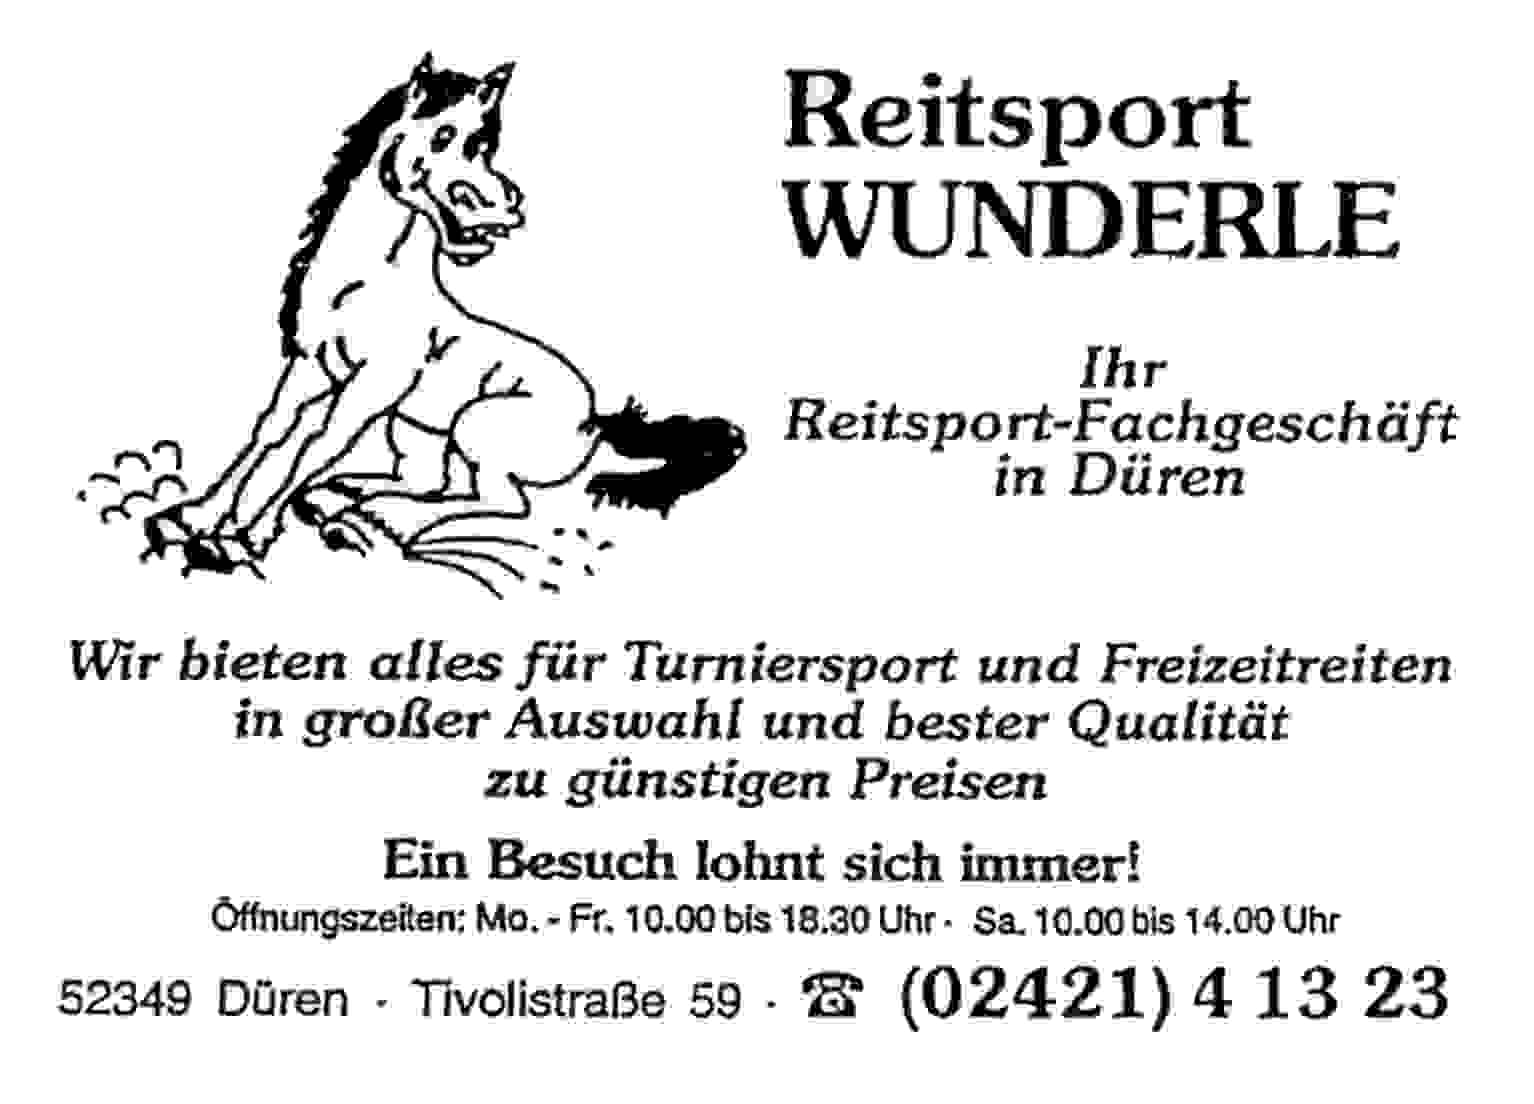 Reitsport Wunderle in Düren